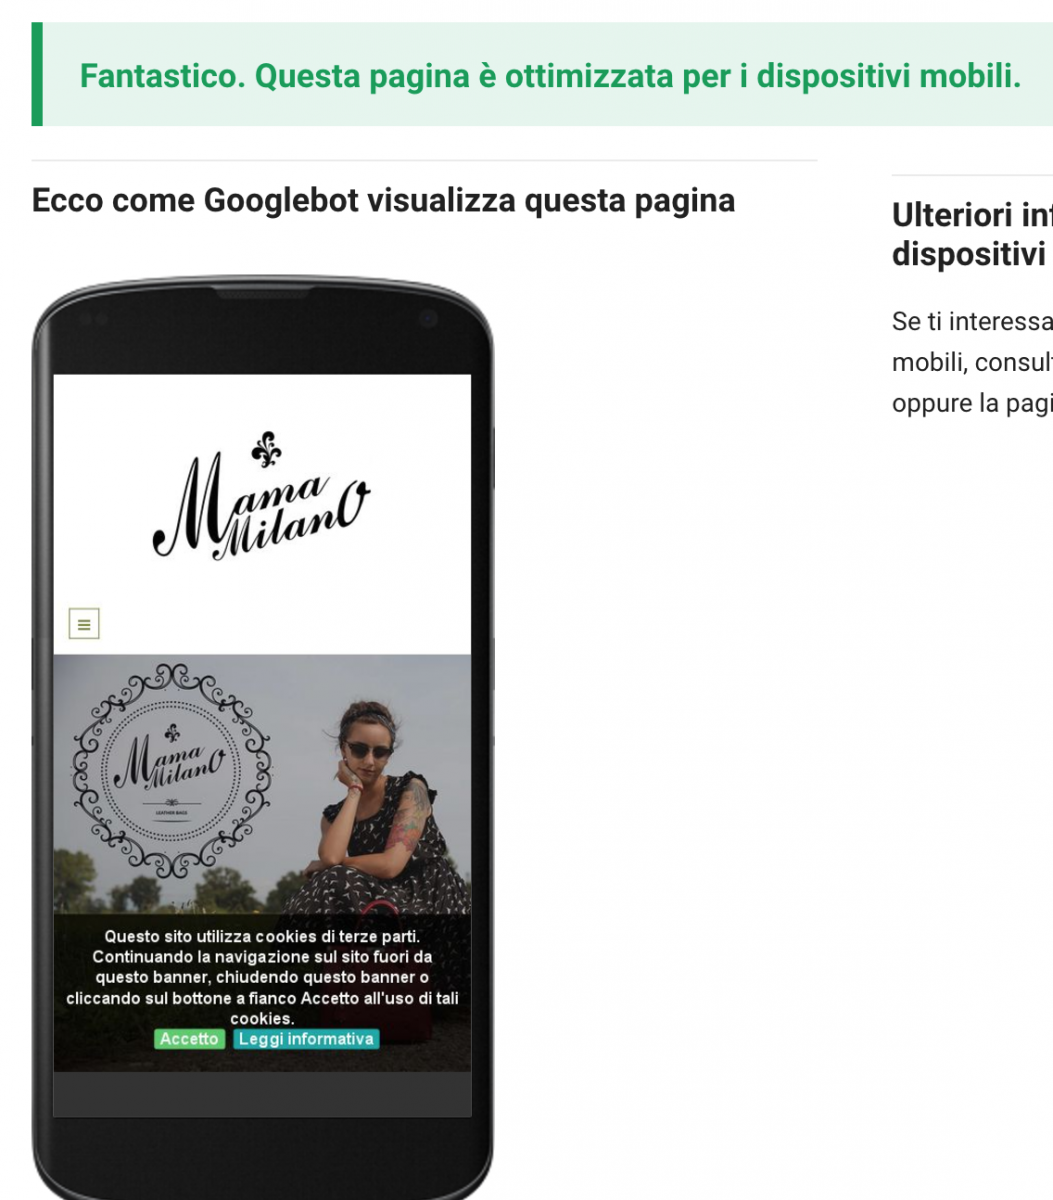 Google verifica siti mobile